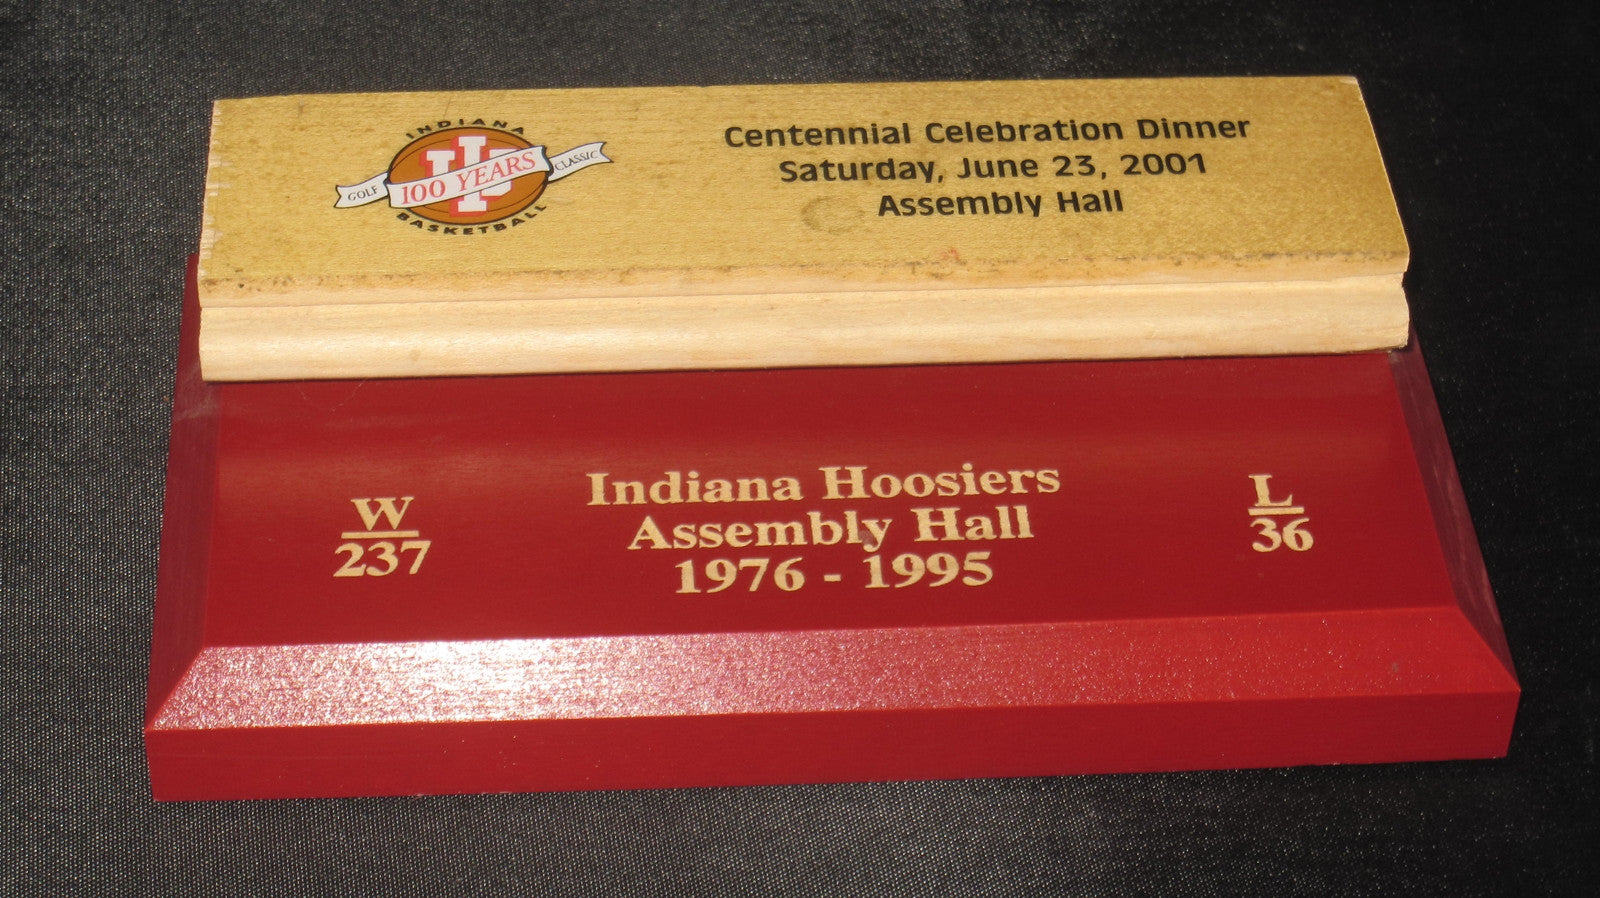 1976-95 Indiana University Basketball Floor Piece 2001 Centennial Celebration Dinner - Vintage Indy Sports